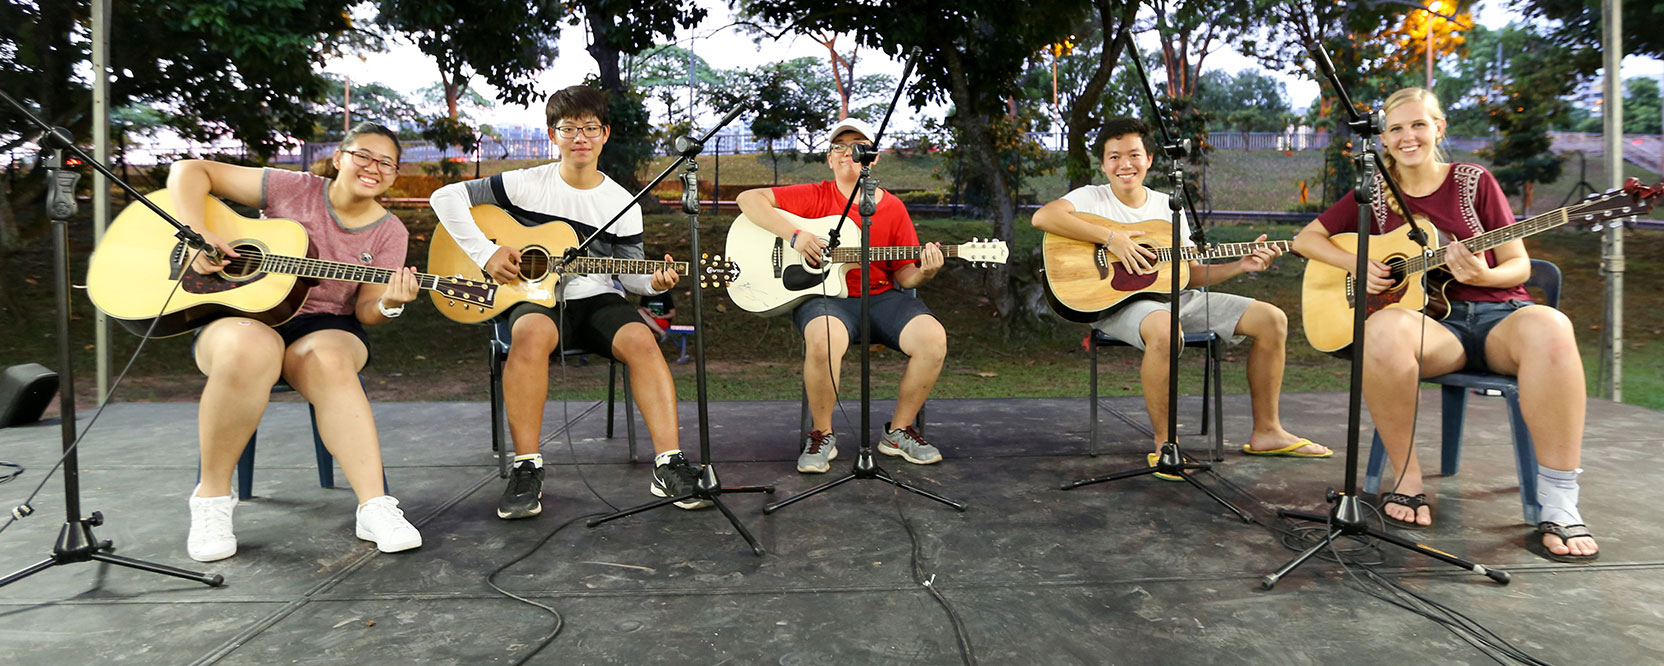 ICS Singapore students performing music on the field